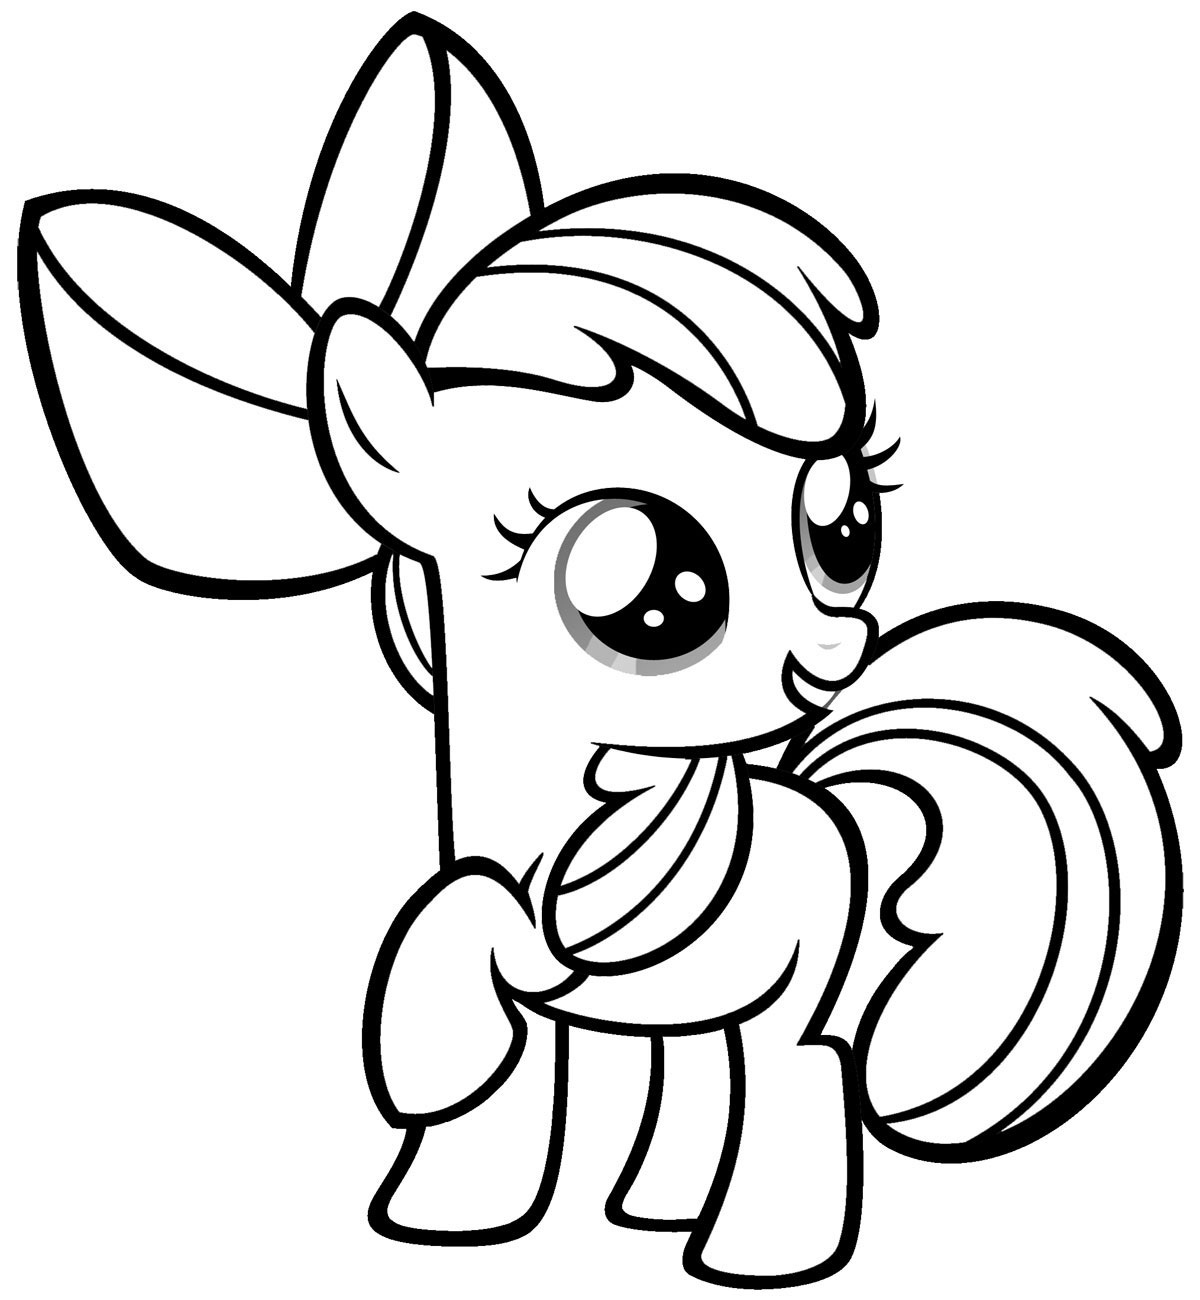 My Little Pony Coloring Pages 10- Dr. Odd